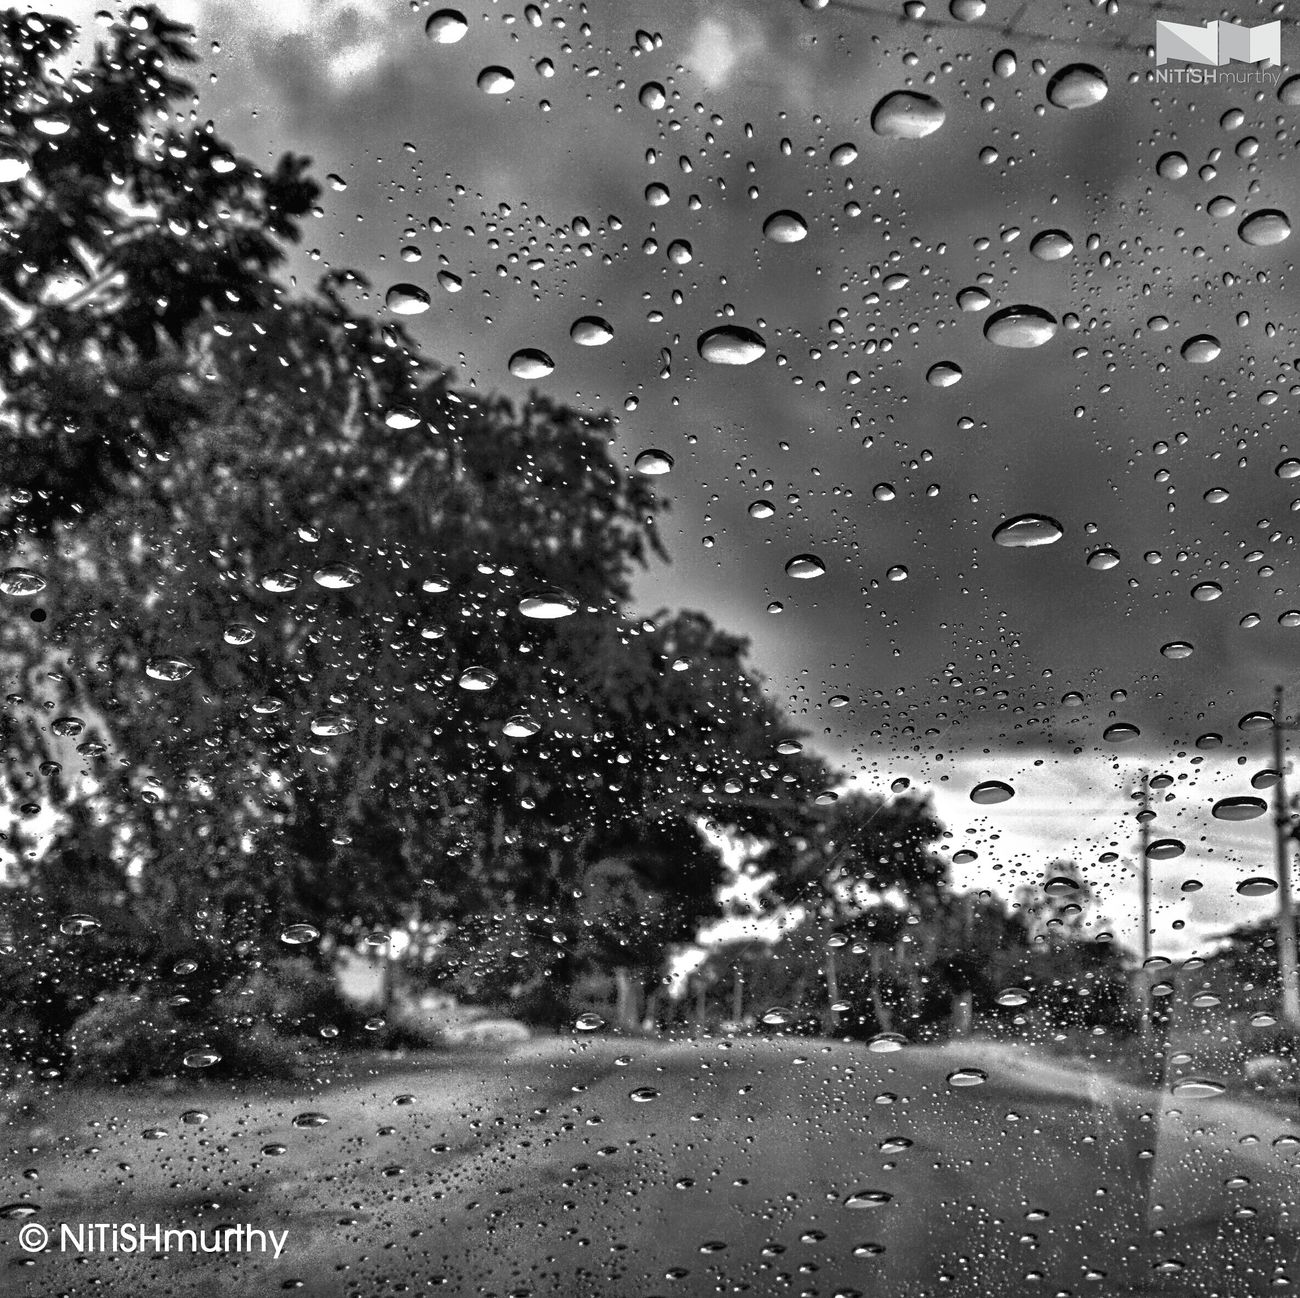 Raining ☔ along the NH207 Raindrops Roadtrip Blackandwhite Nexus5 #Nexus5Photography #HDR+